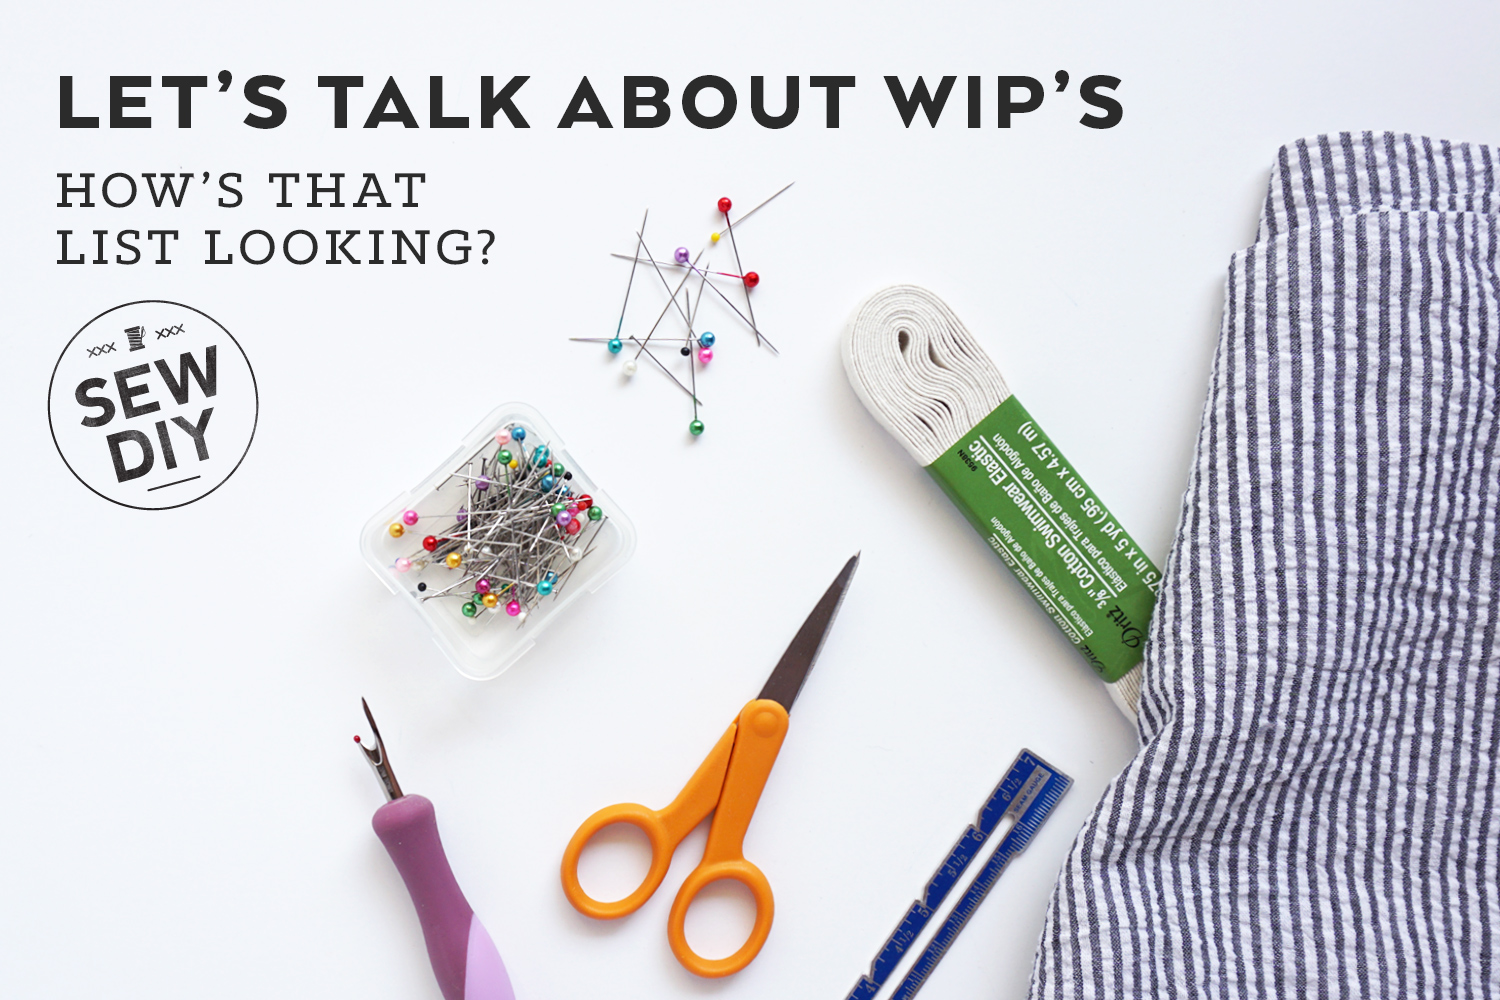 Let's talk about WIPs | Sew DIY